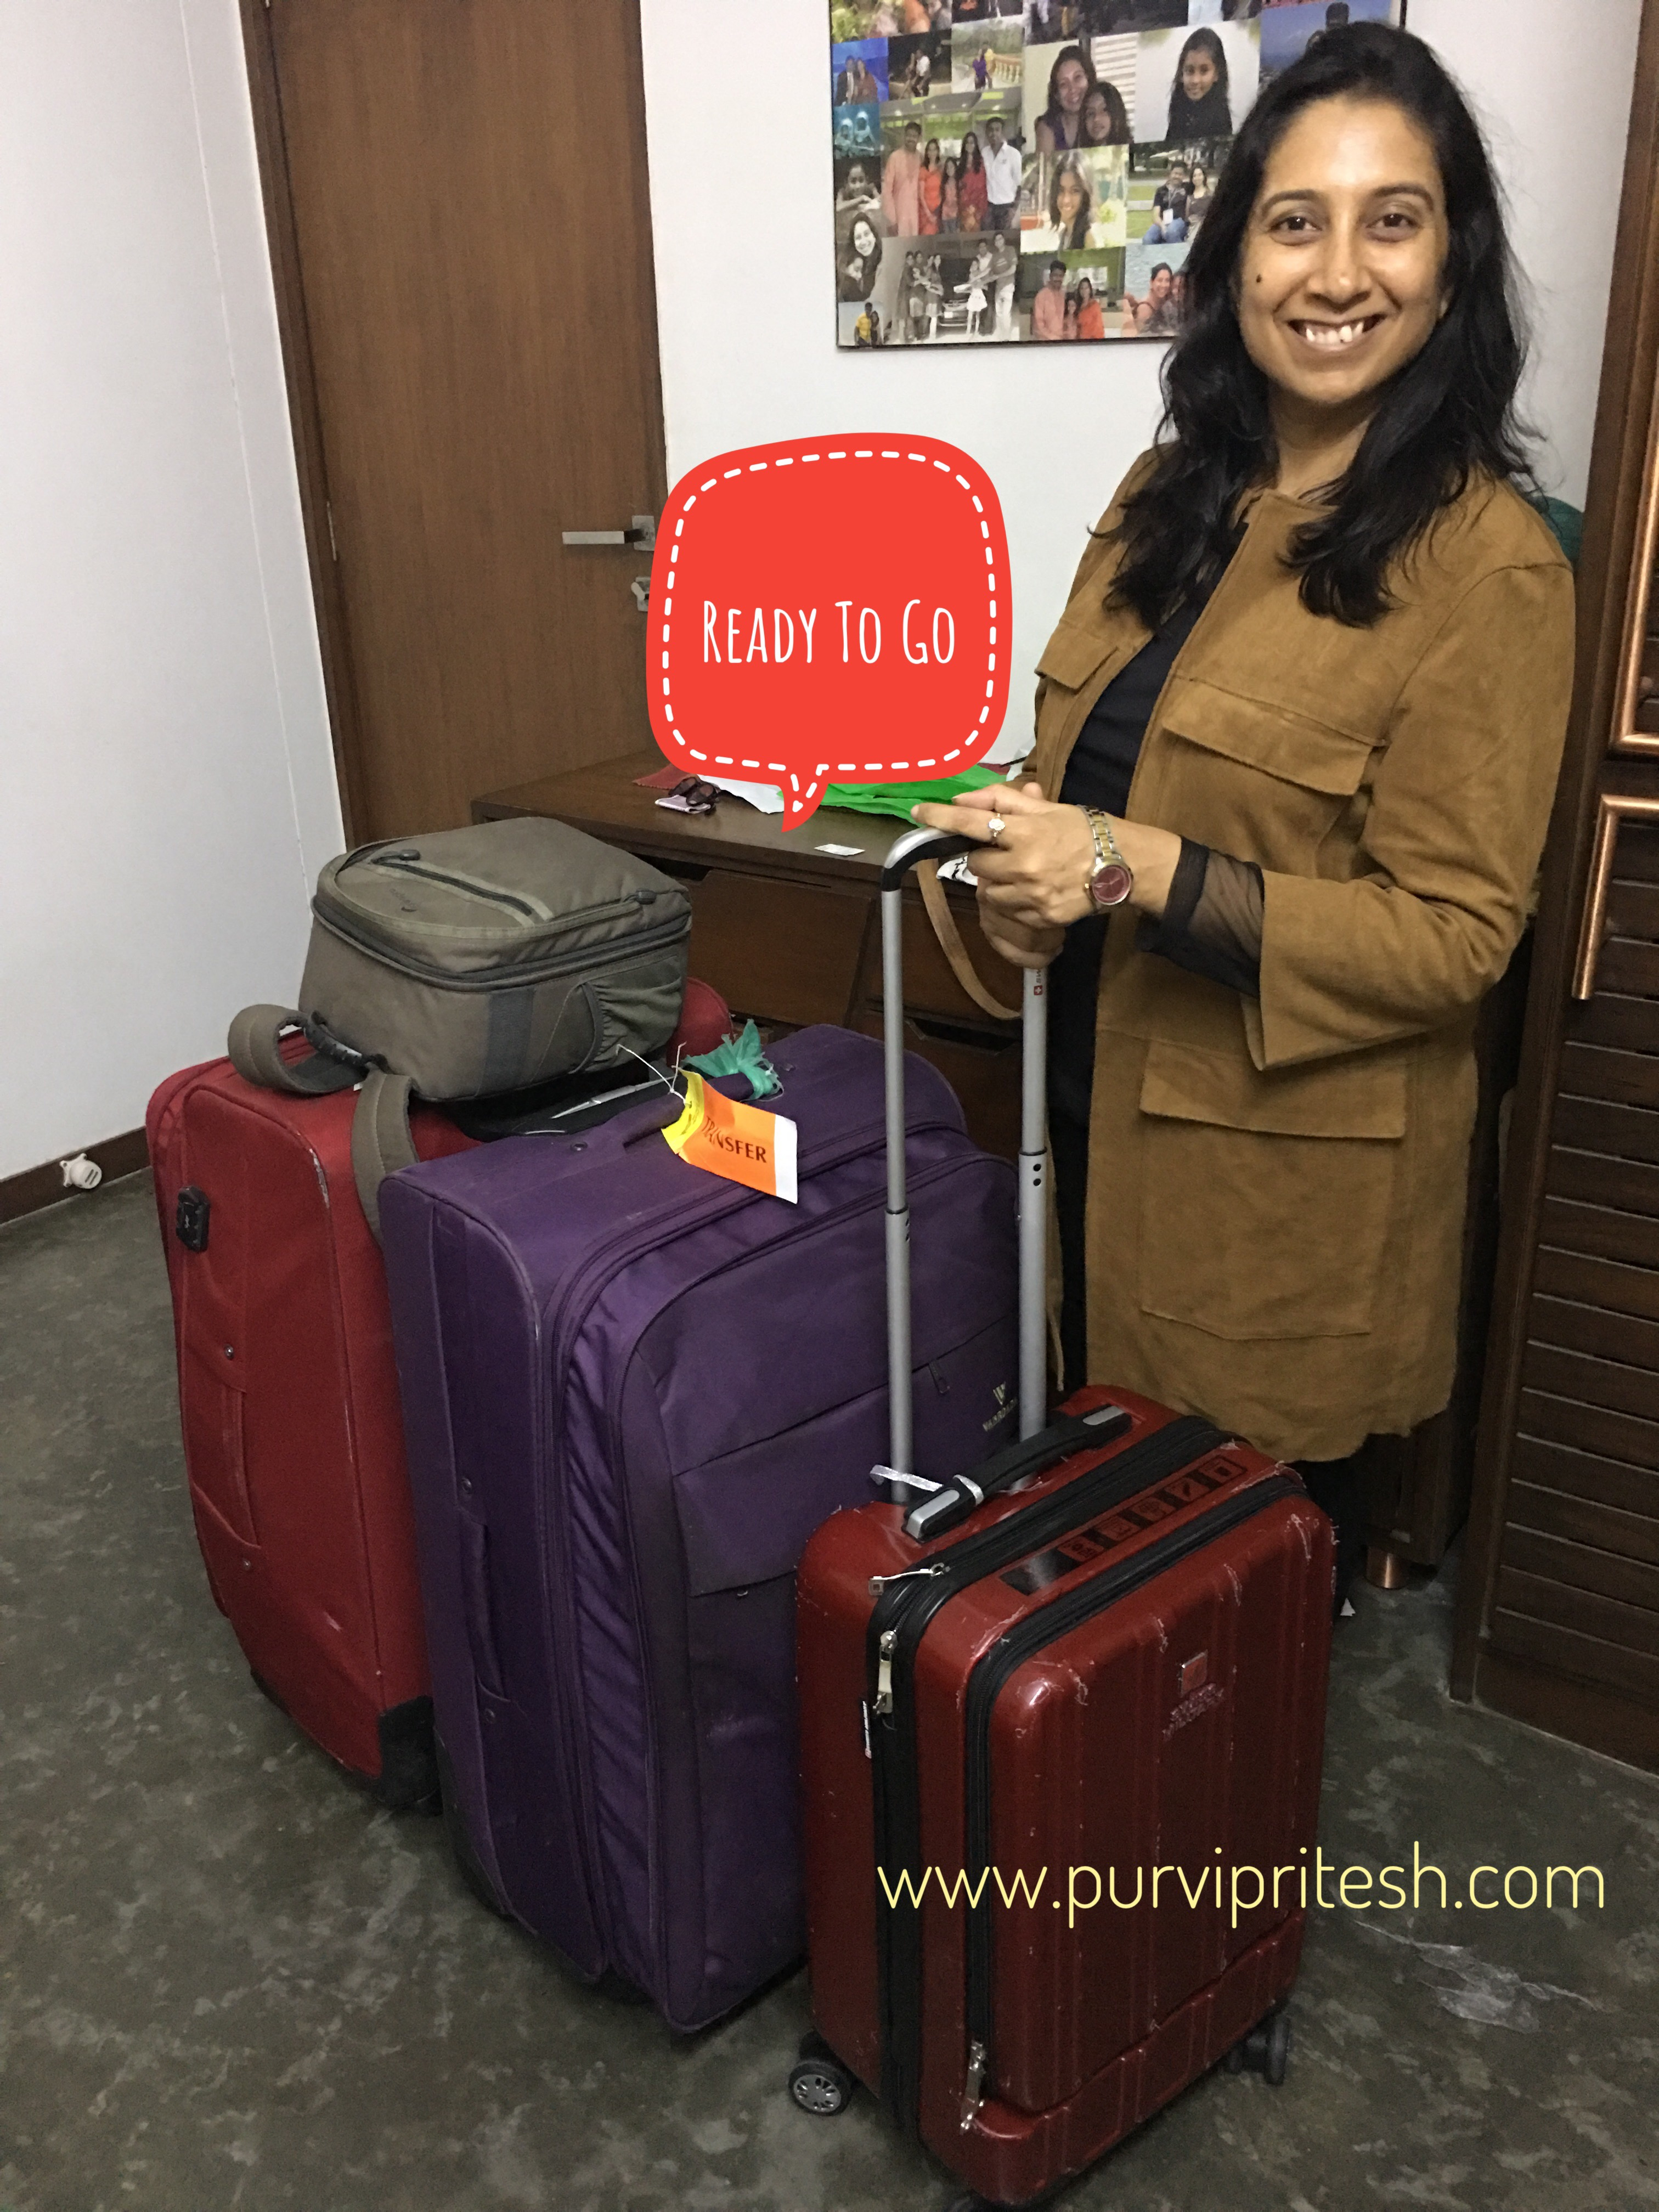 Travel suggestions- Purvipritesh